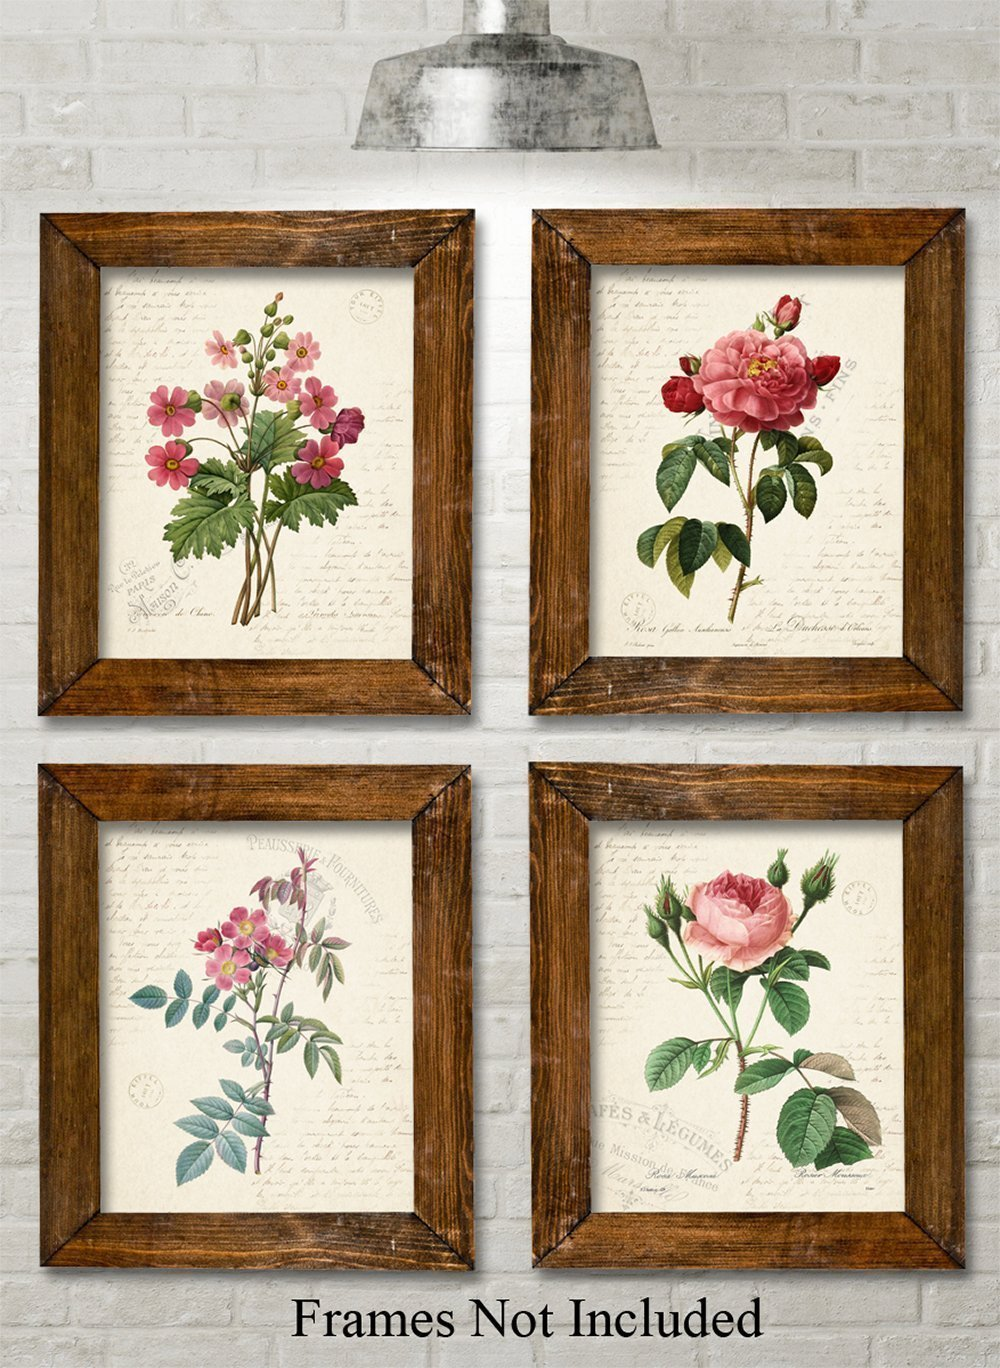 Paris Botanicals Art Prints - Set of Four Photos (8x10) Unframed - Great for Bedroom/Bathroom Decor by Personalized Signs by Lone Star Art